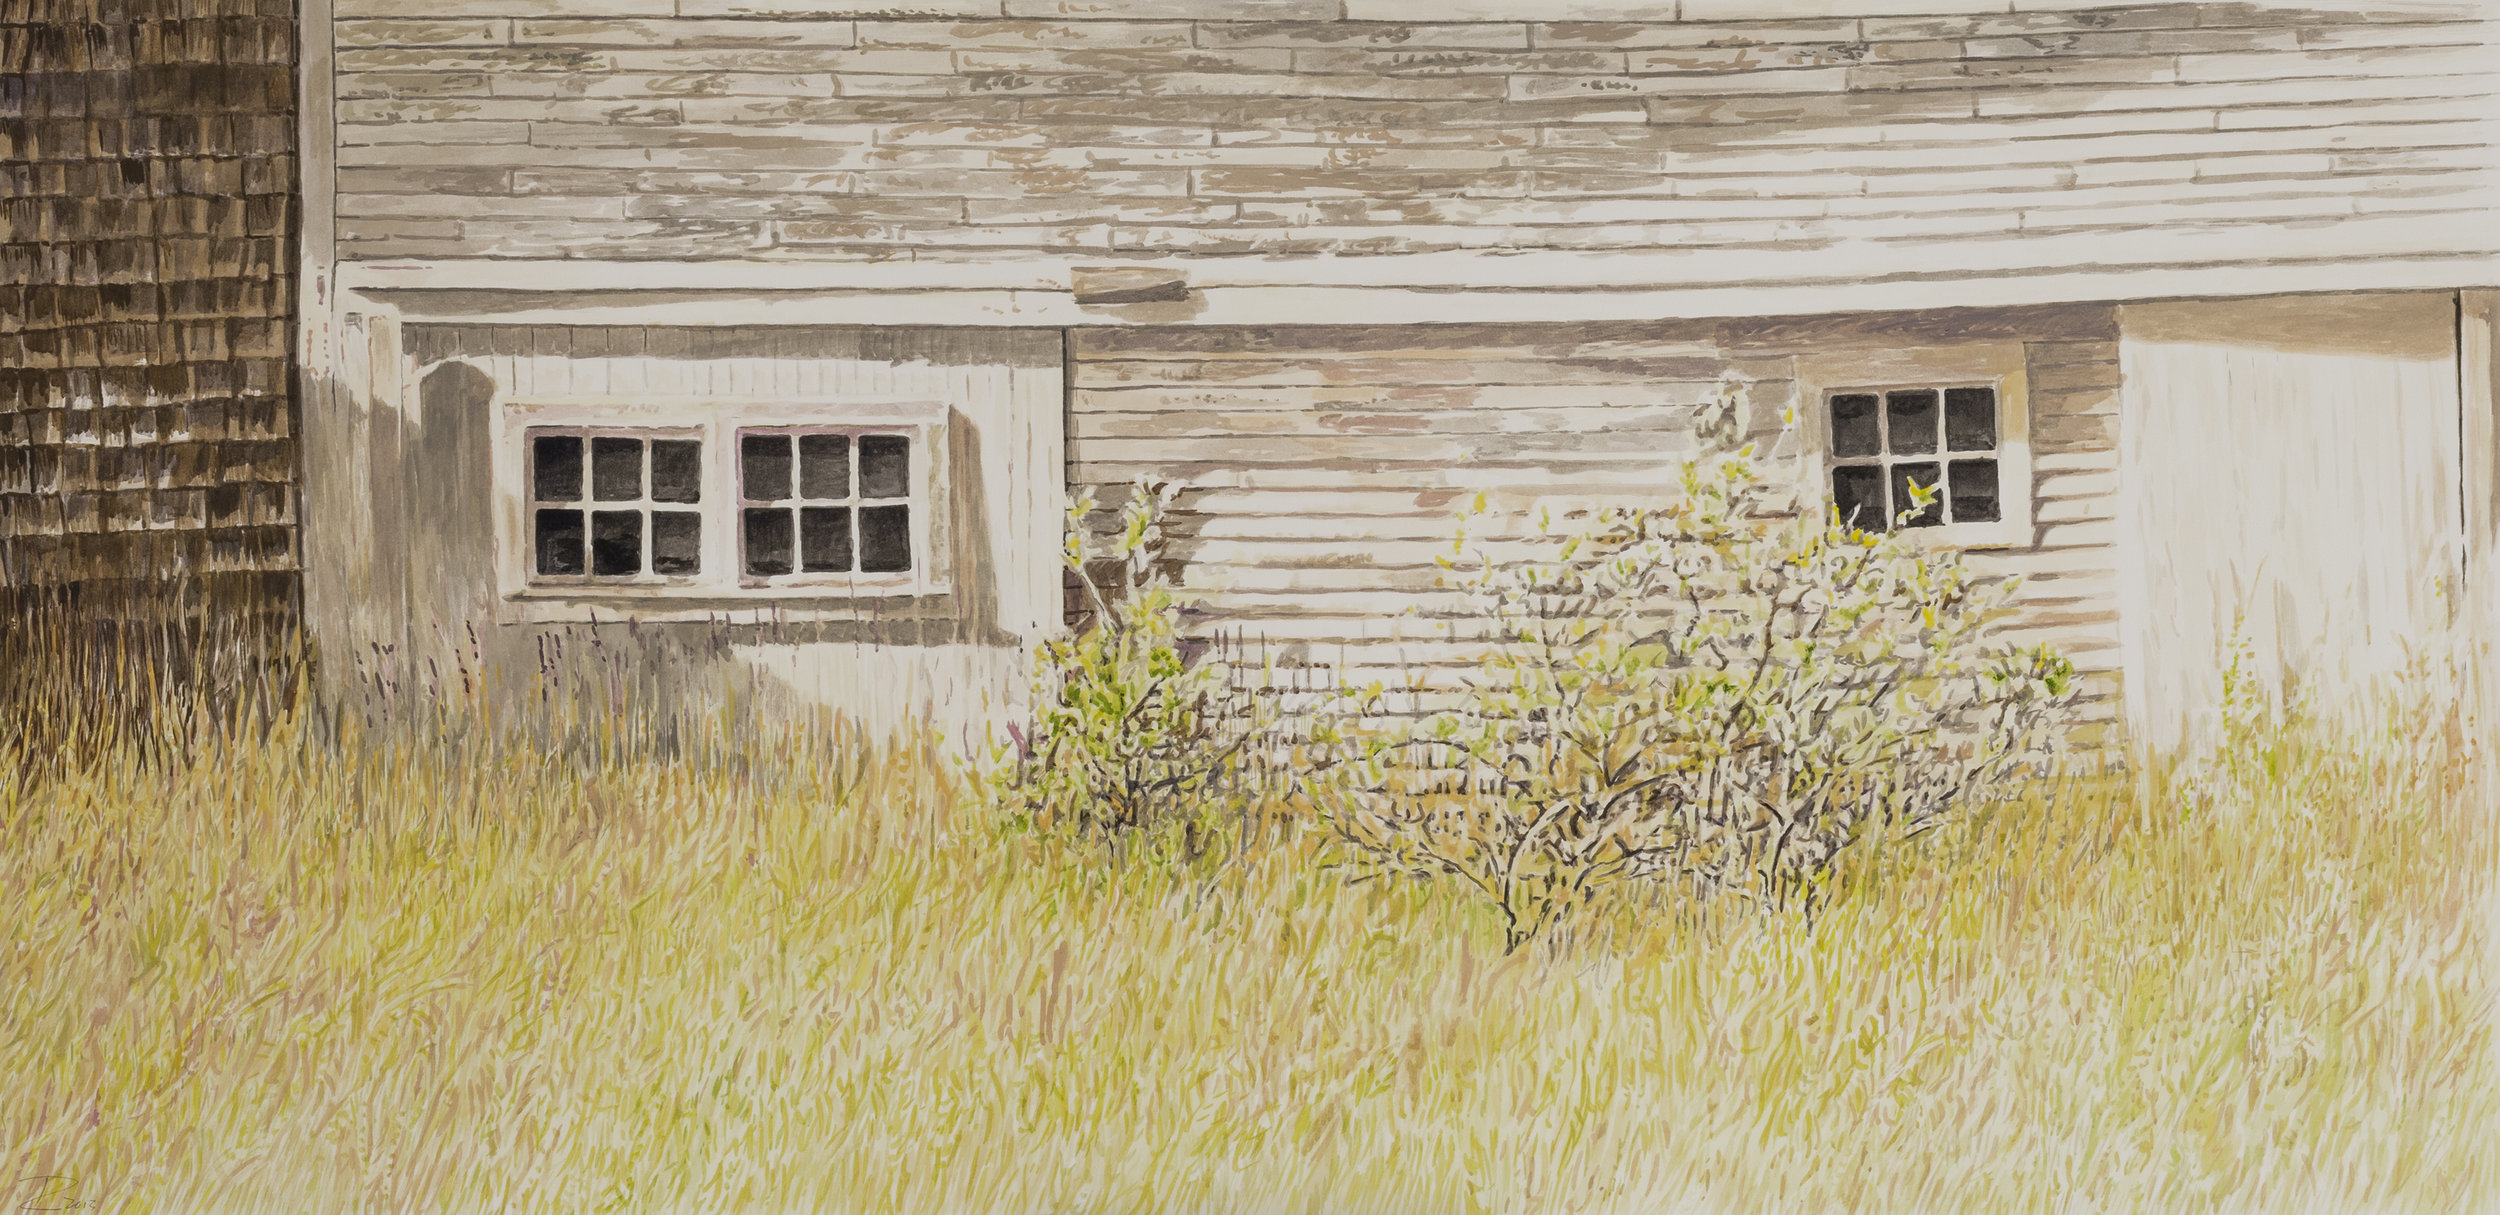 The Old Sail Loft  Gouache on paper 16 x 33 inches, available